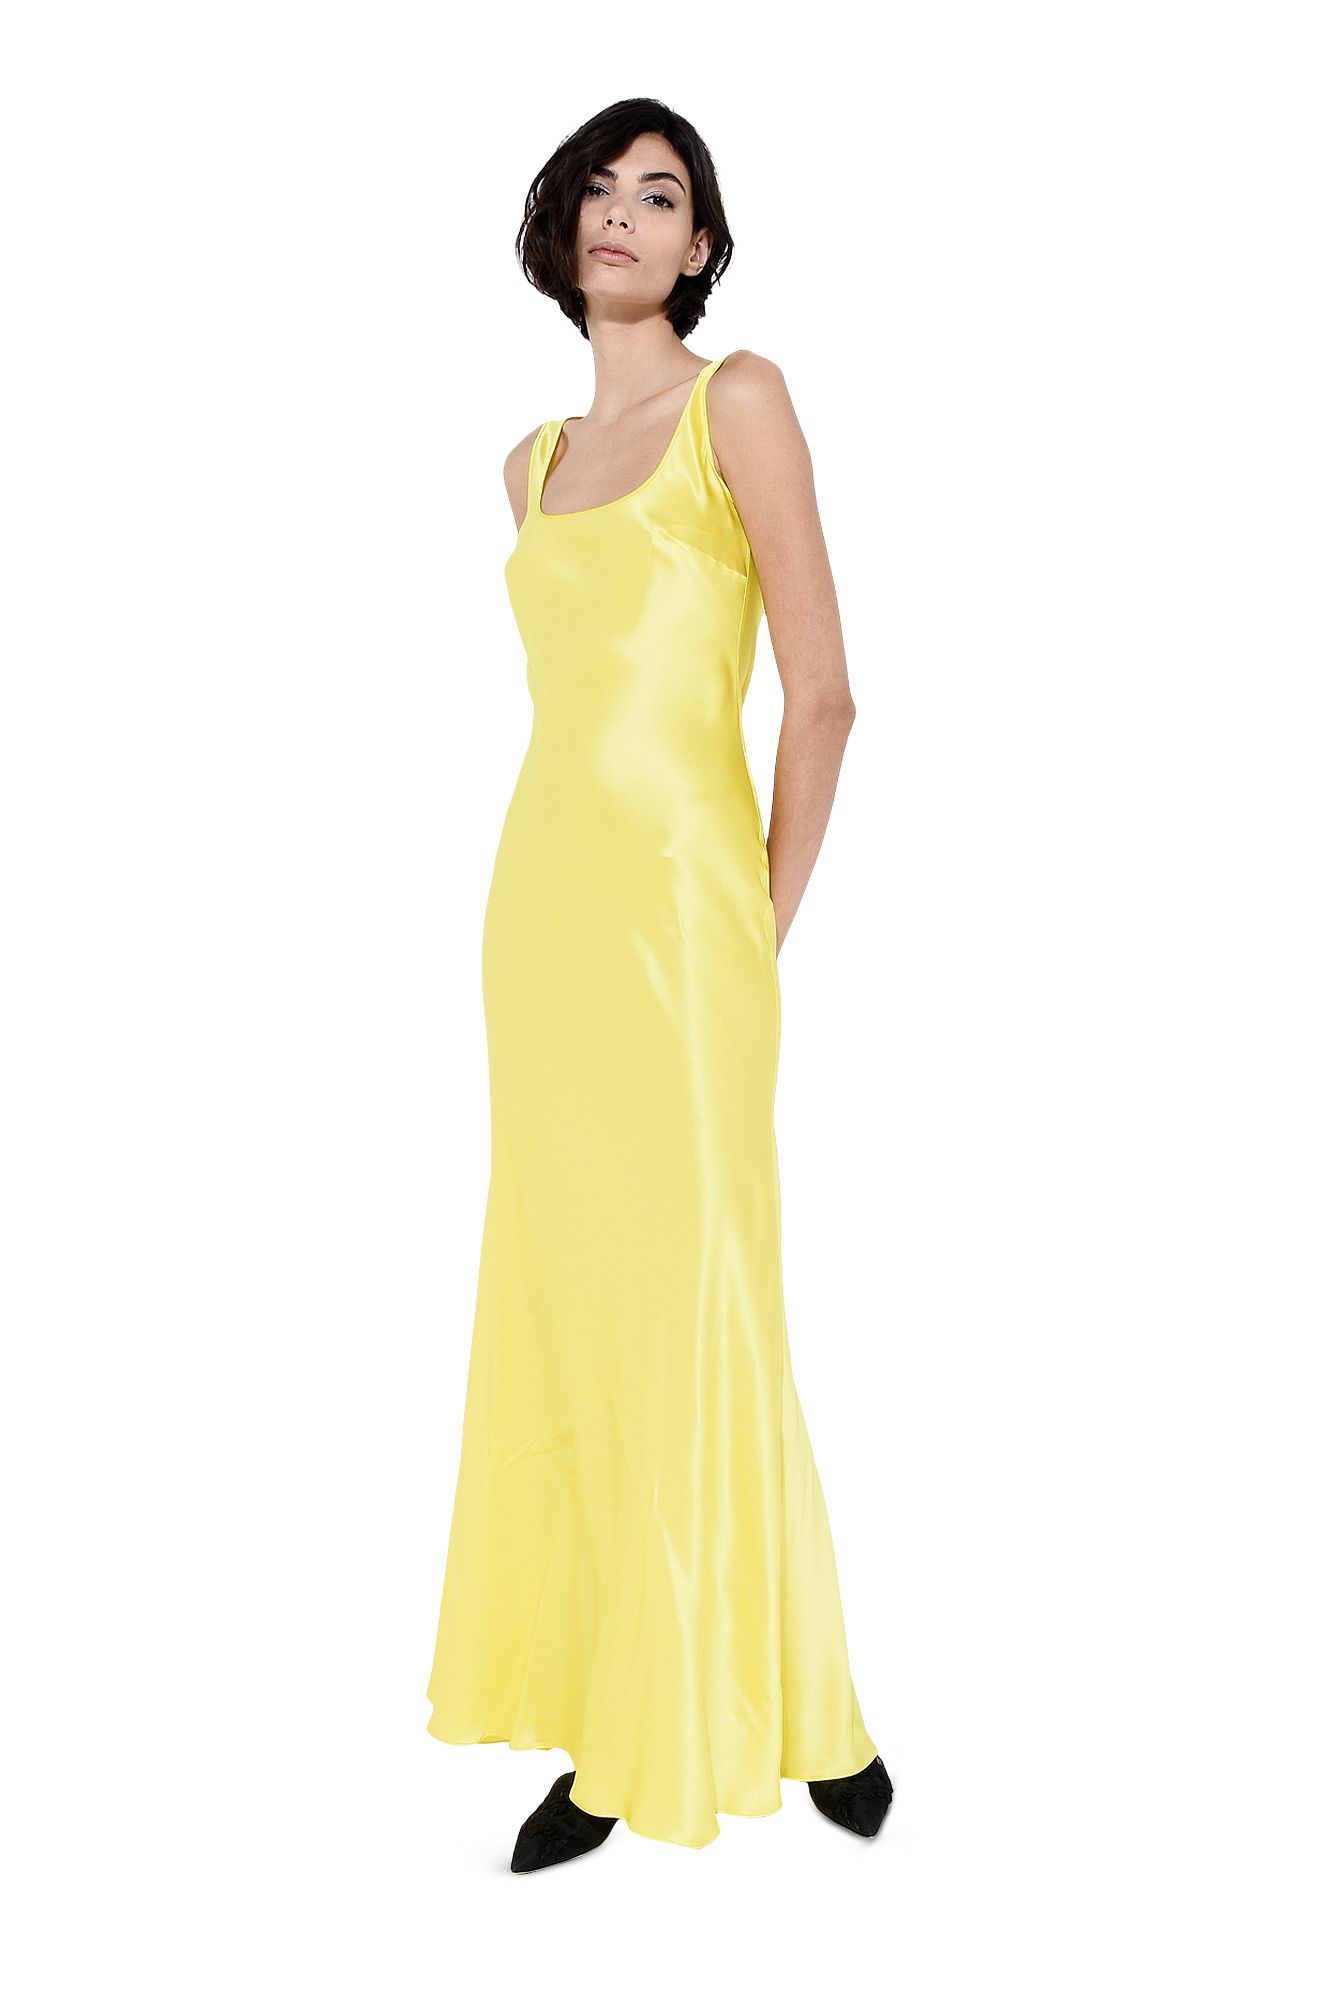 Bright yellow slip dress